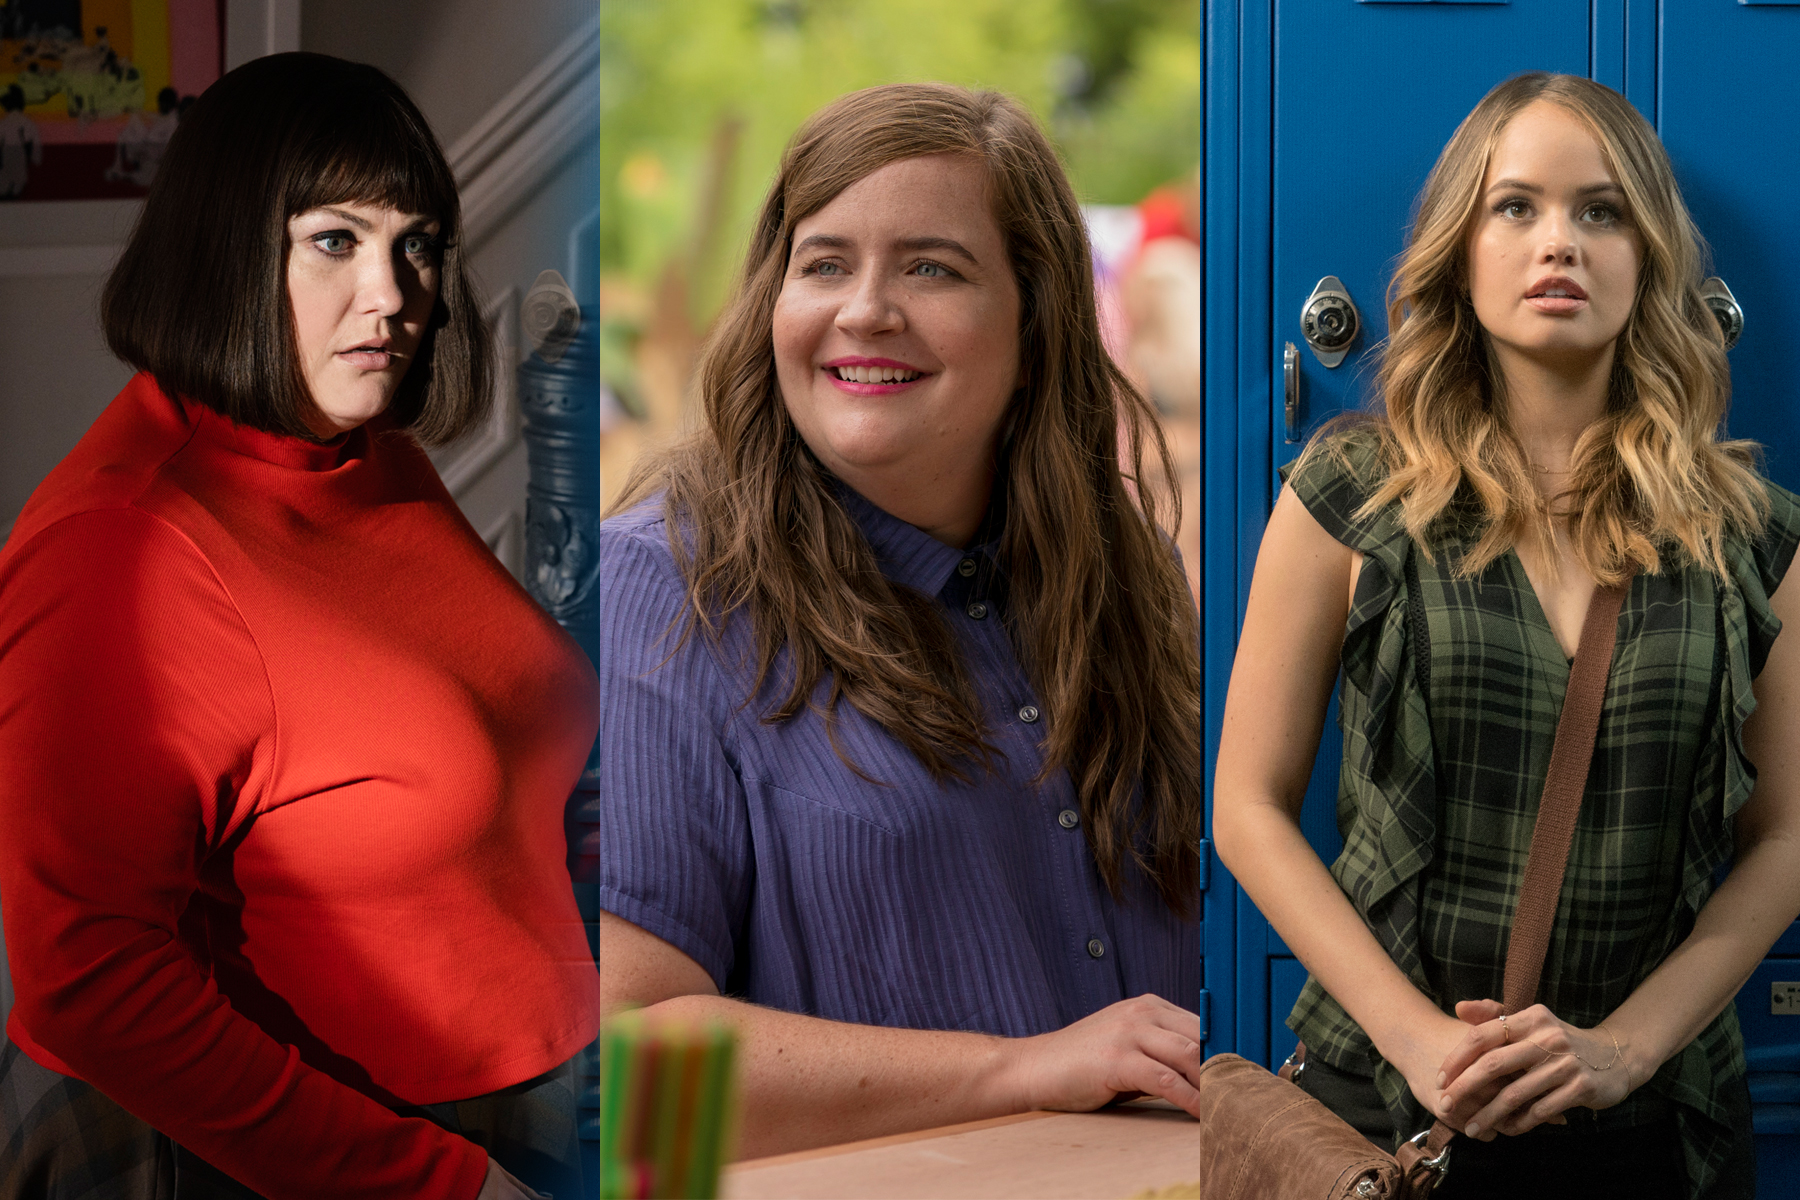 f6c0345207 In a promising trend, the streaming era has led to more shows centered on  plus-size women — but television is still struggling to treat these  characters ...